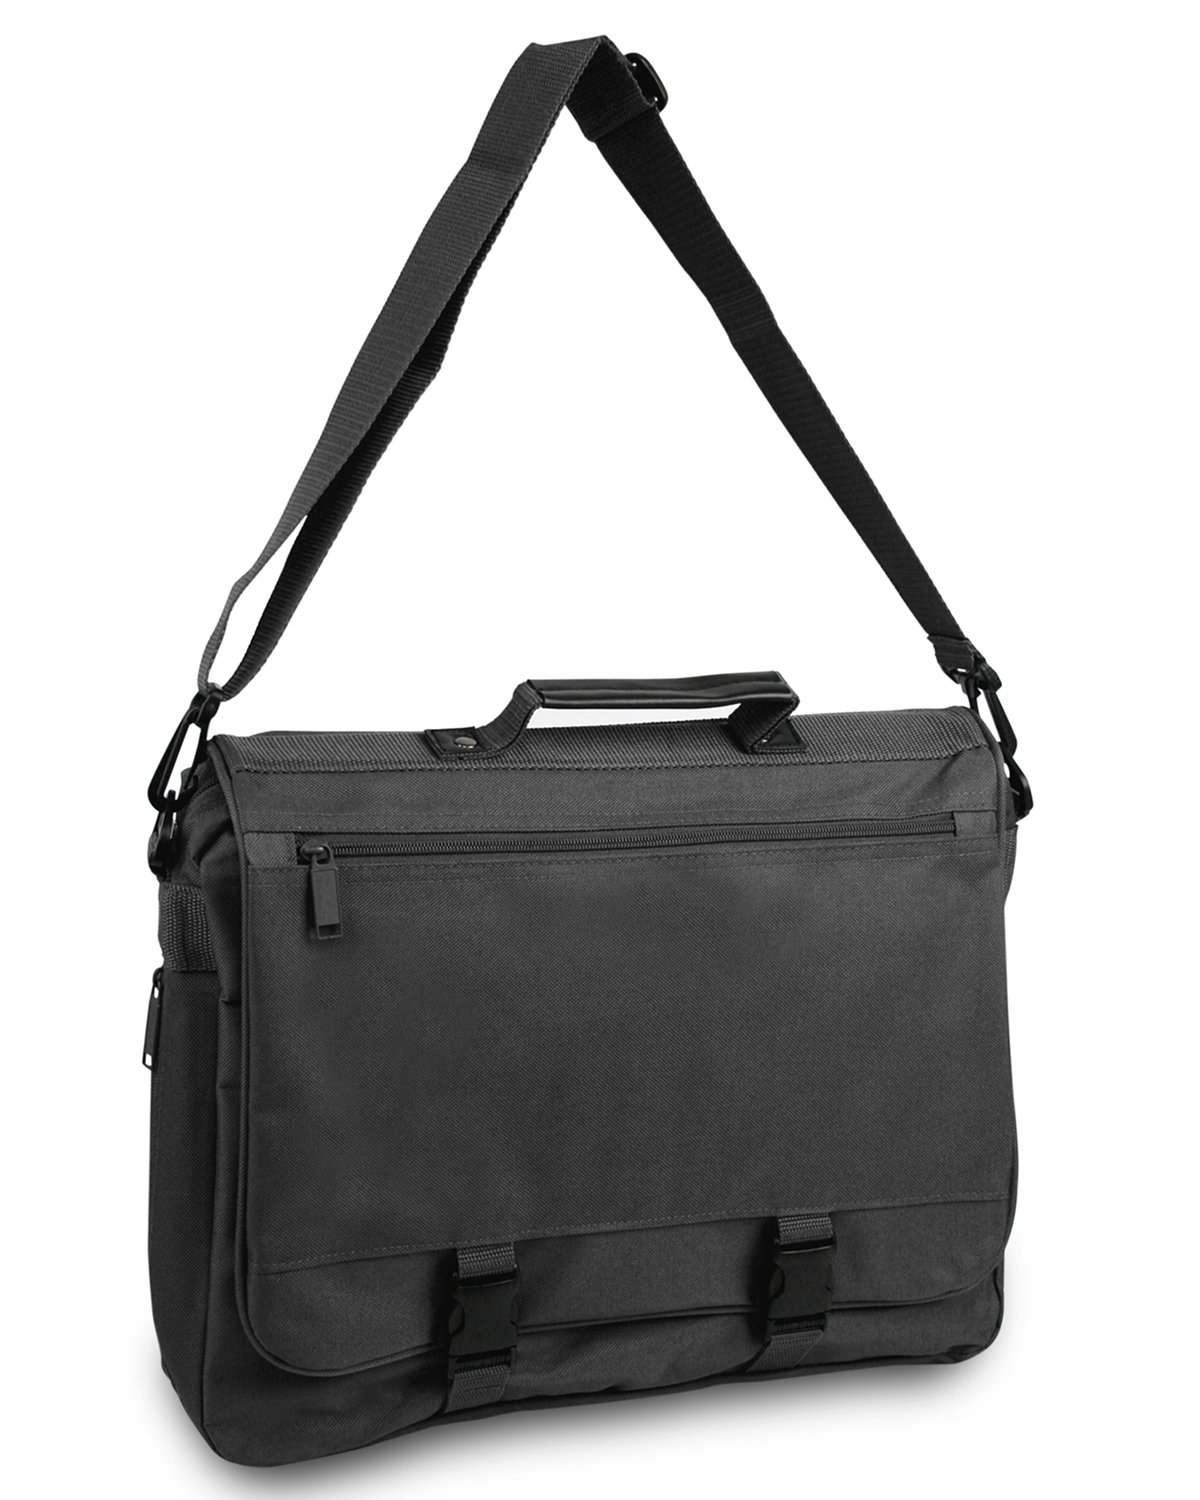 Ultraclub Accessories Expandable Briefcase 1012 -Black One